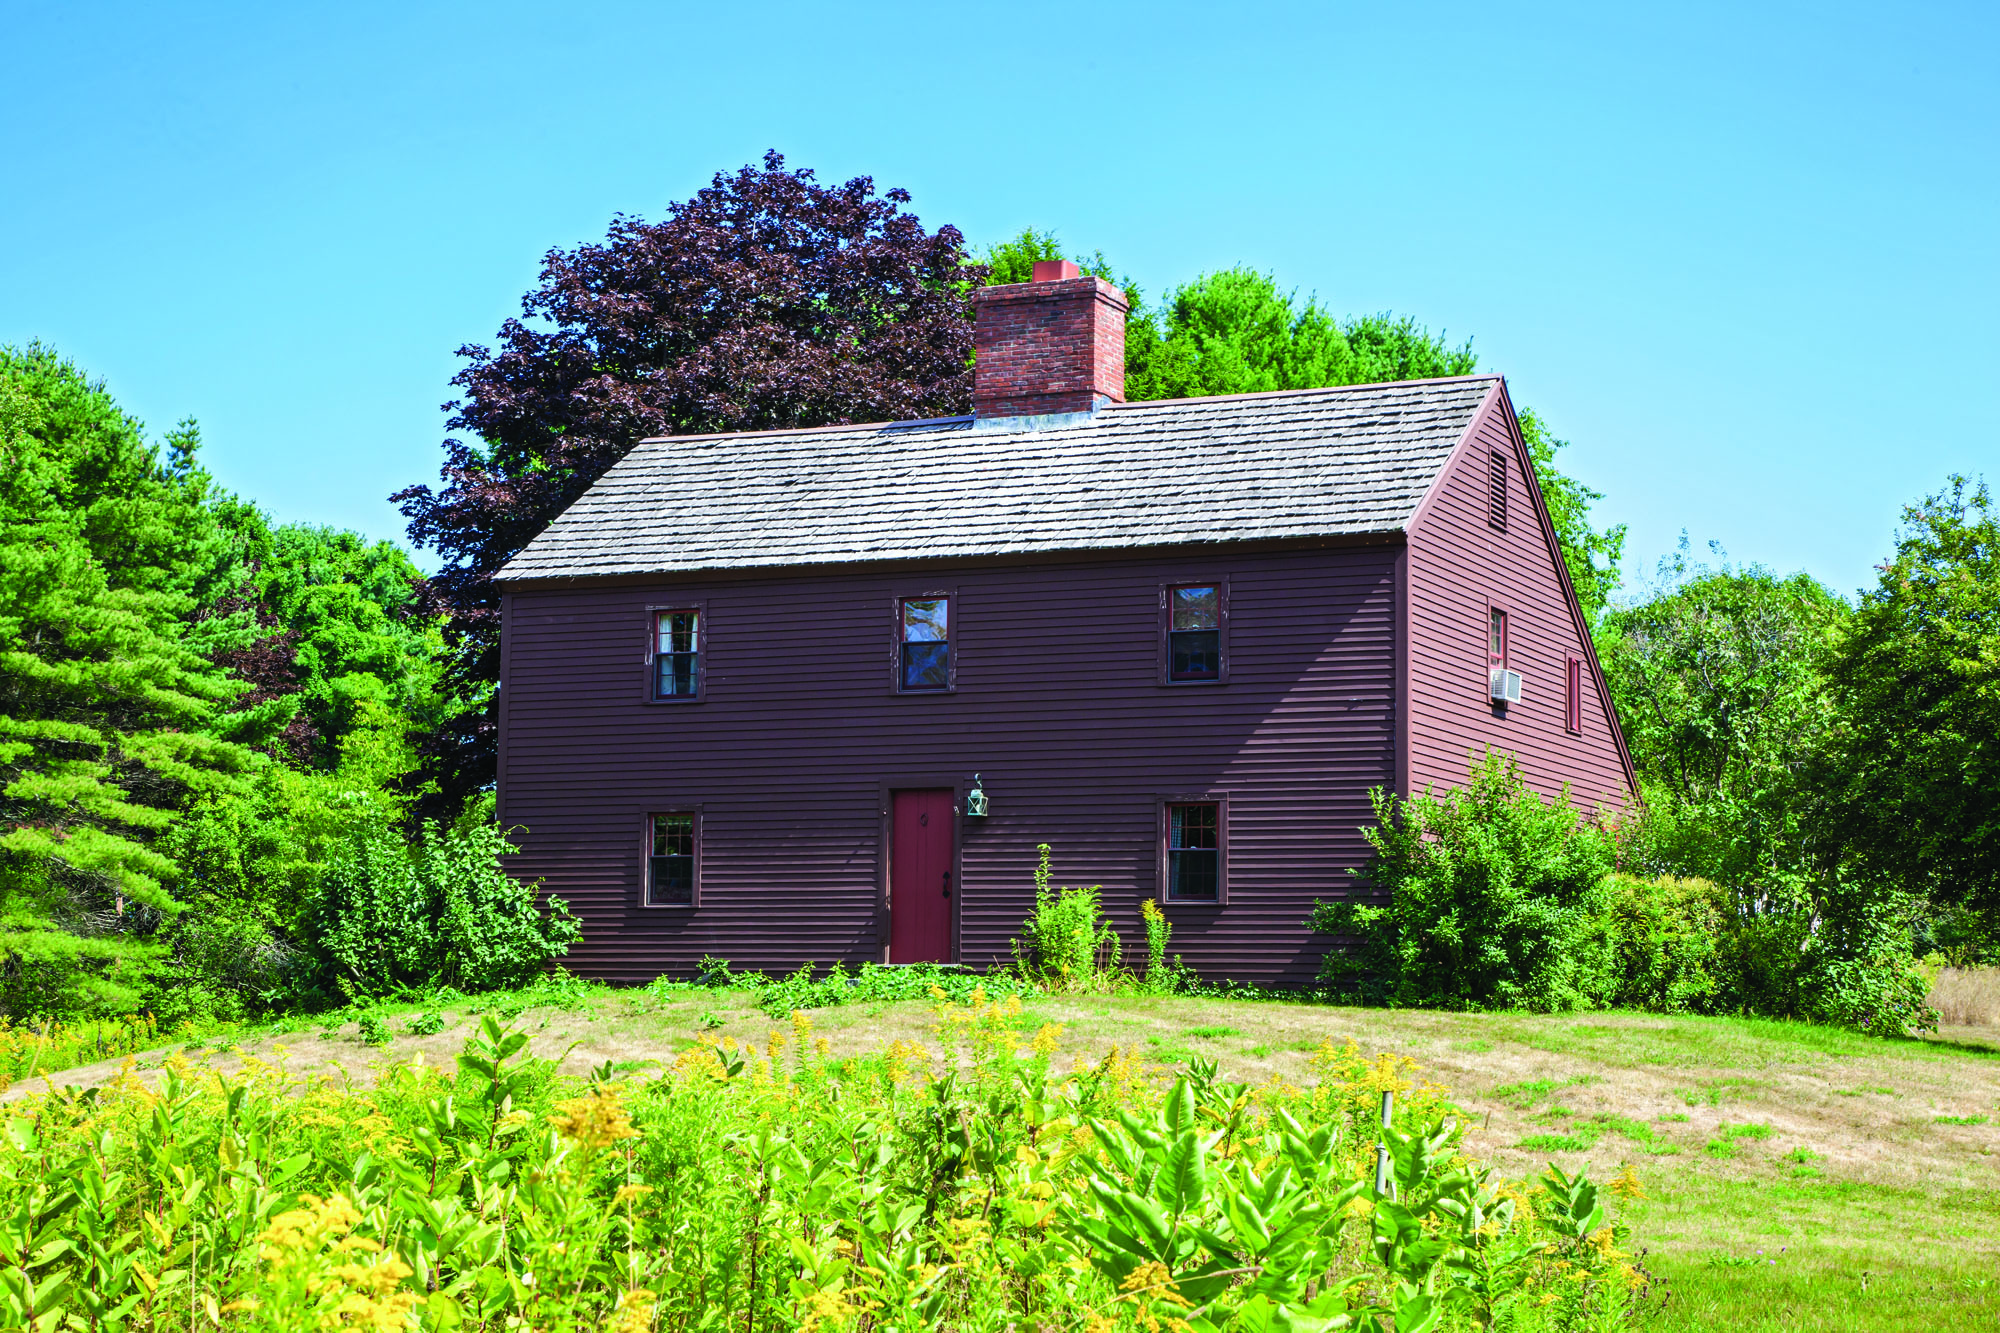 The house was built by a couple of ardent preservationists, who used the 1715 Sedgley House in York, Maine, as their model.